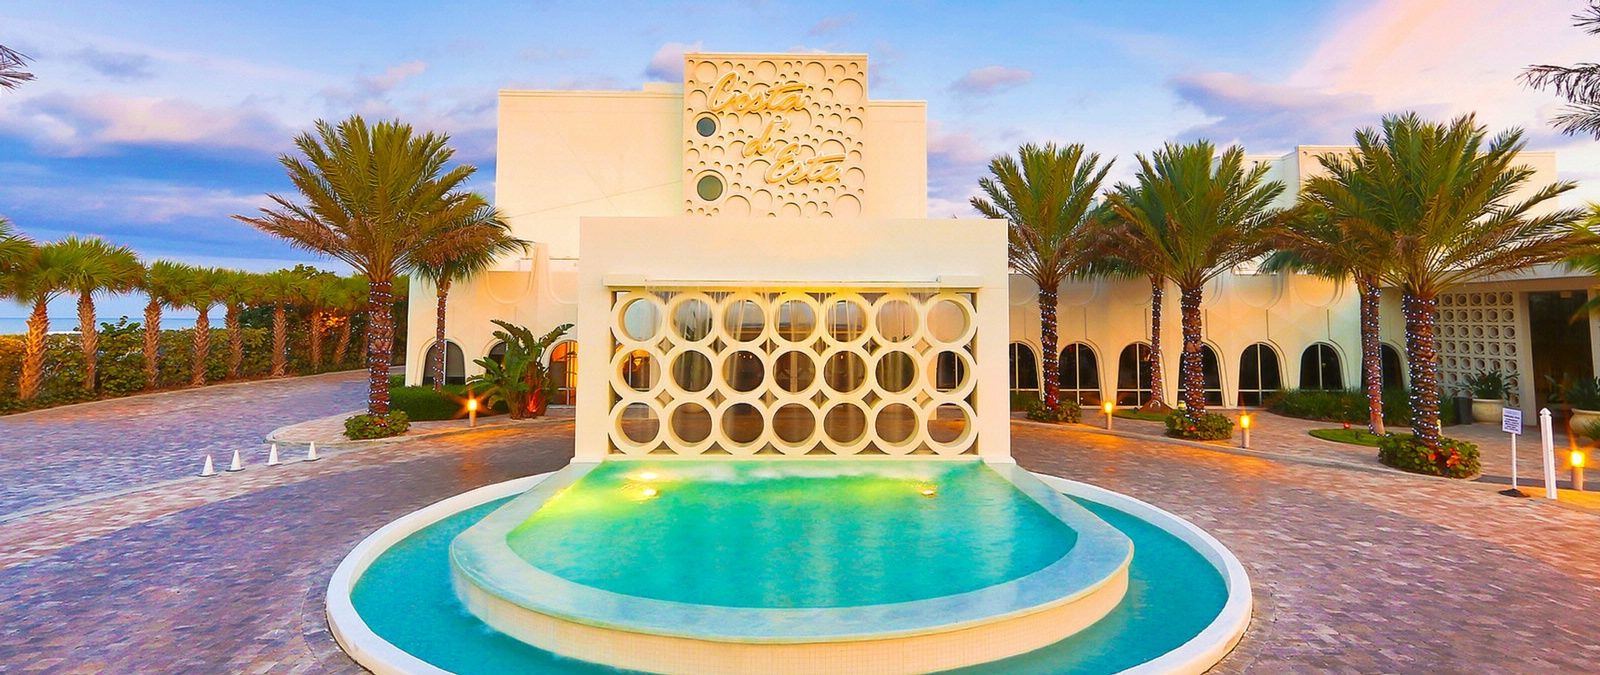 Costa D Este Is A Jewel Amongst Vero Beach Hotels Let Our Staff Inspire Pamper And Indulge You By Pristine Florida Resort Location